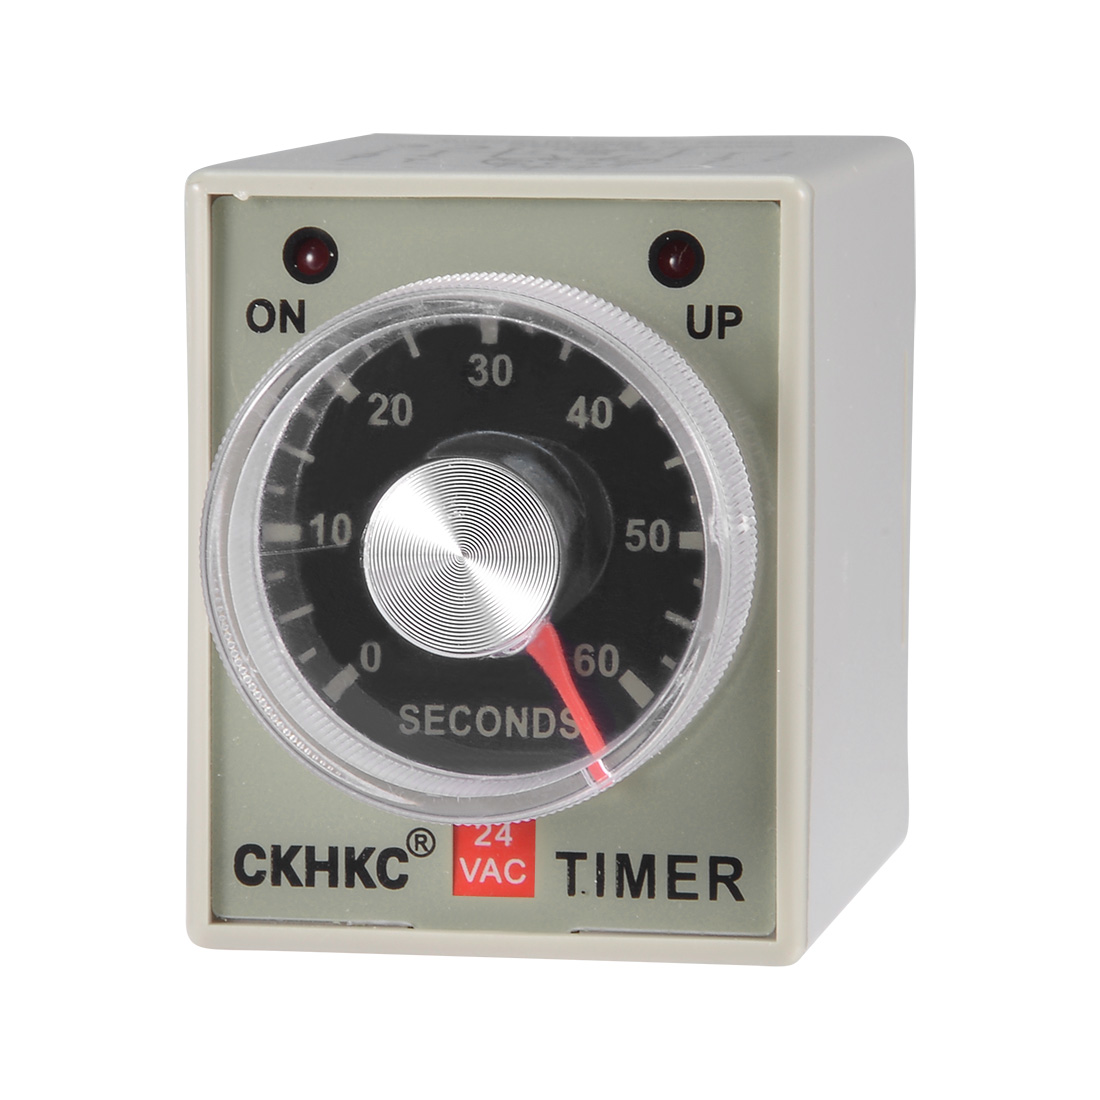 AC24V 60S 8 Terminals Range Adjustable Delay Timer Time Relay AH3-3